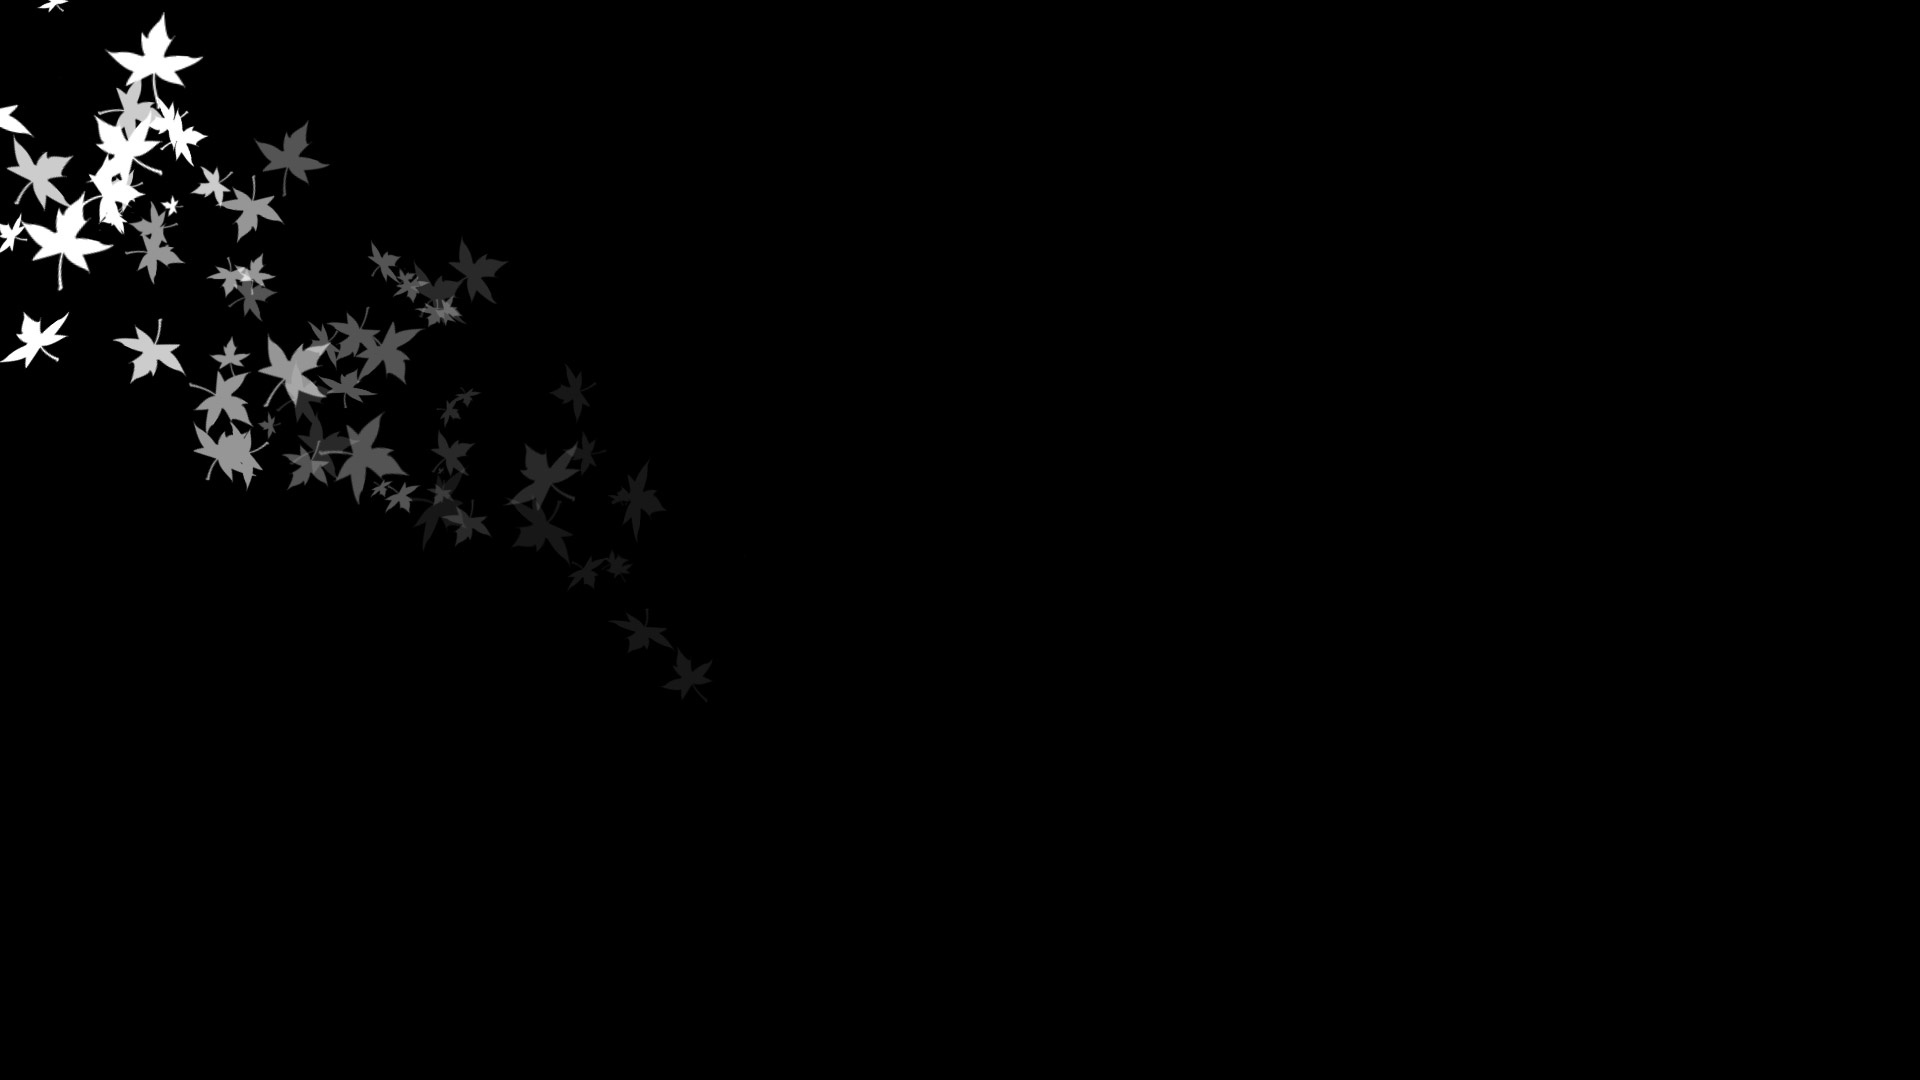 Black Wallpaper with effect